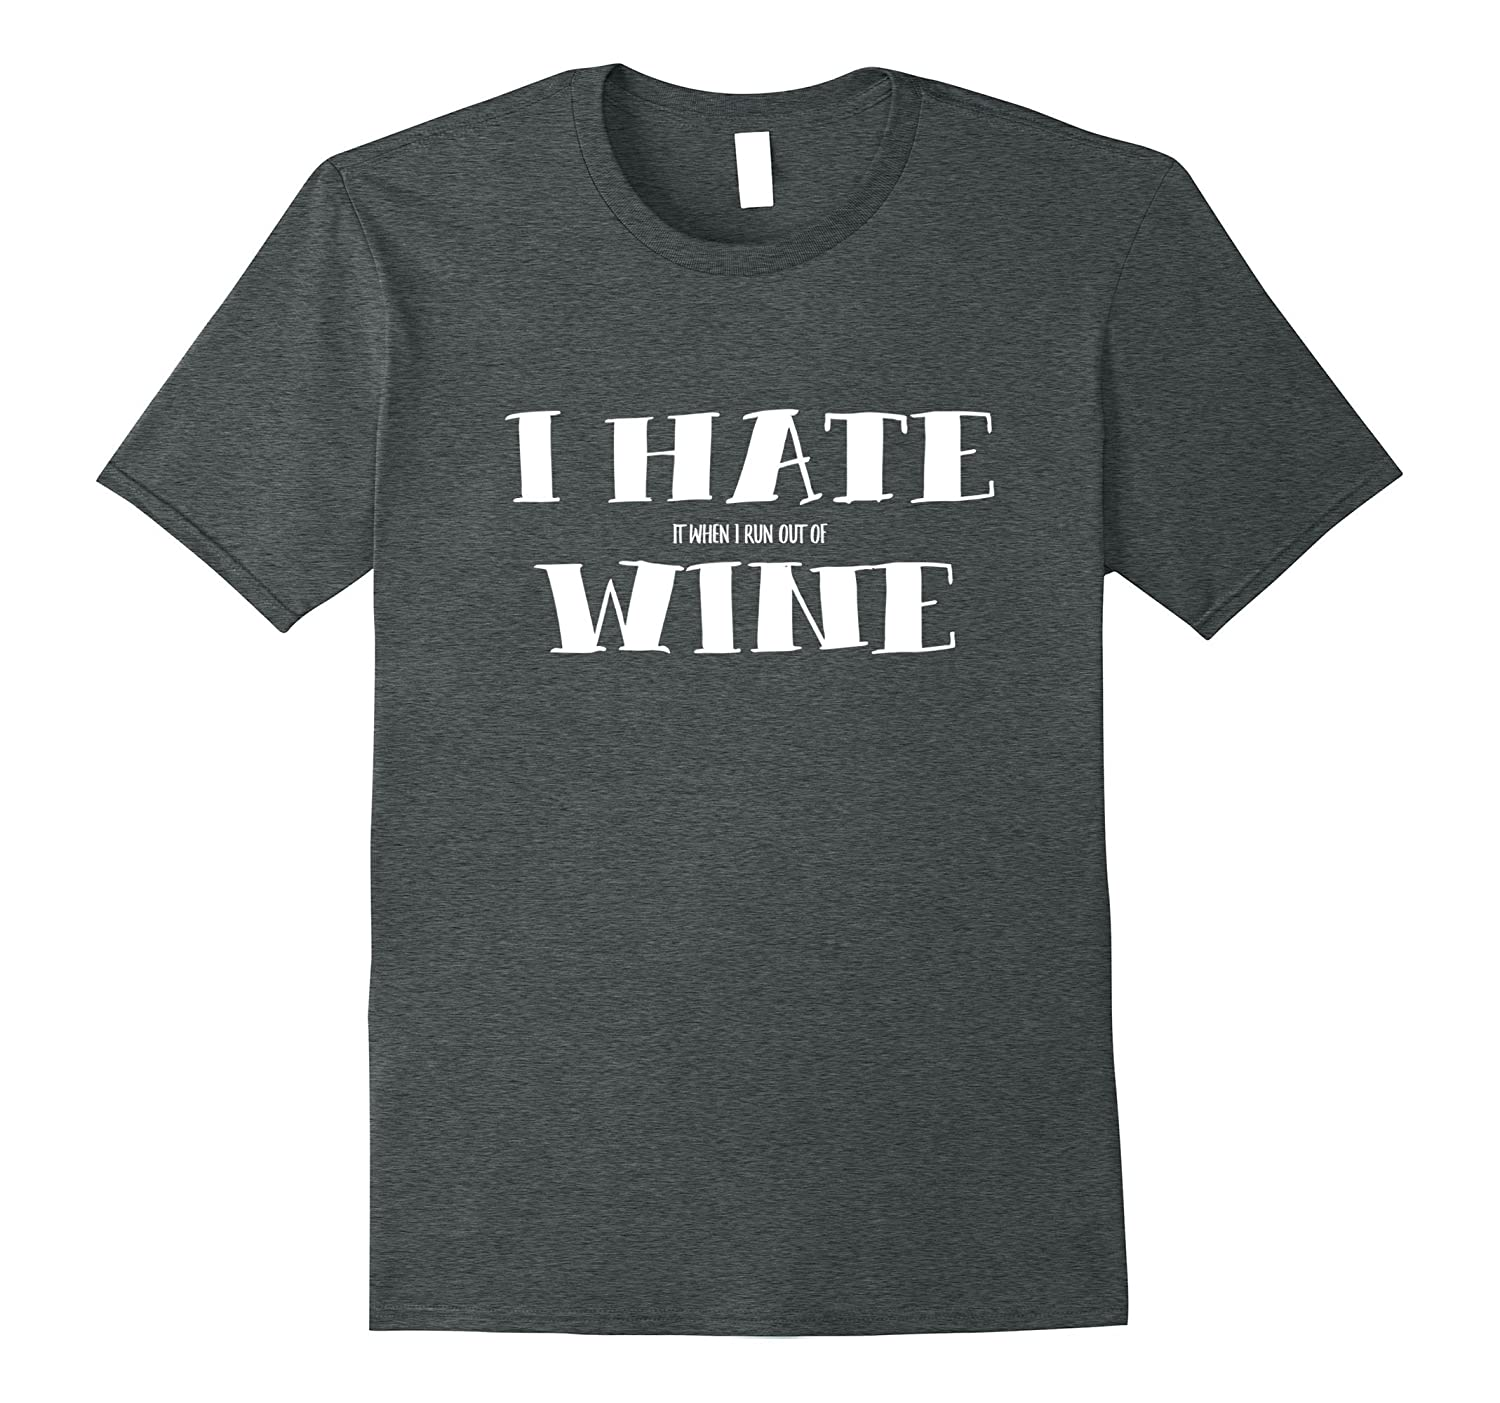 FUNNY WINE T-SHIRTS I HATE WHEN I RUN OUT OF WINE-Vaci